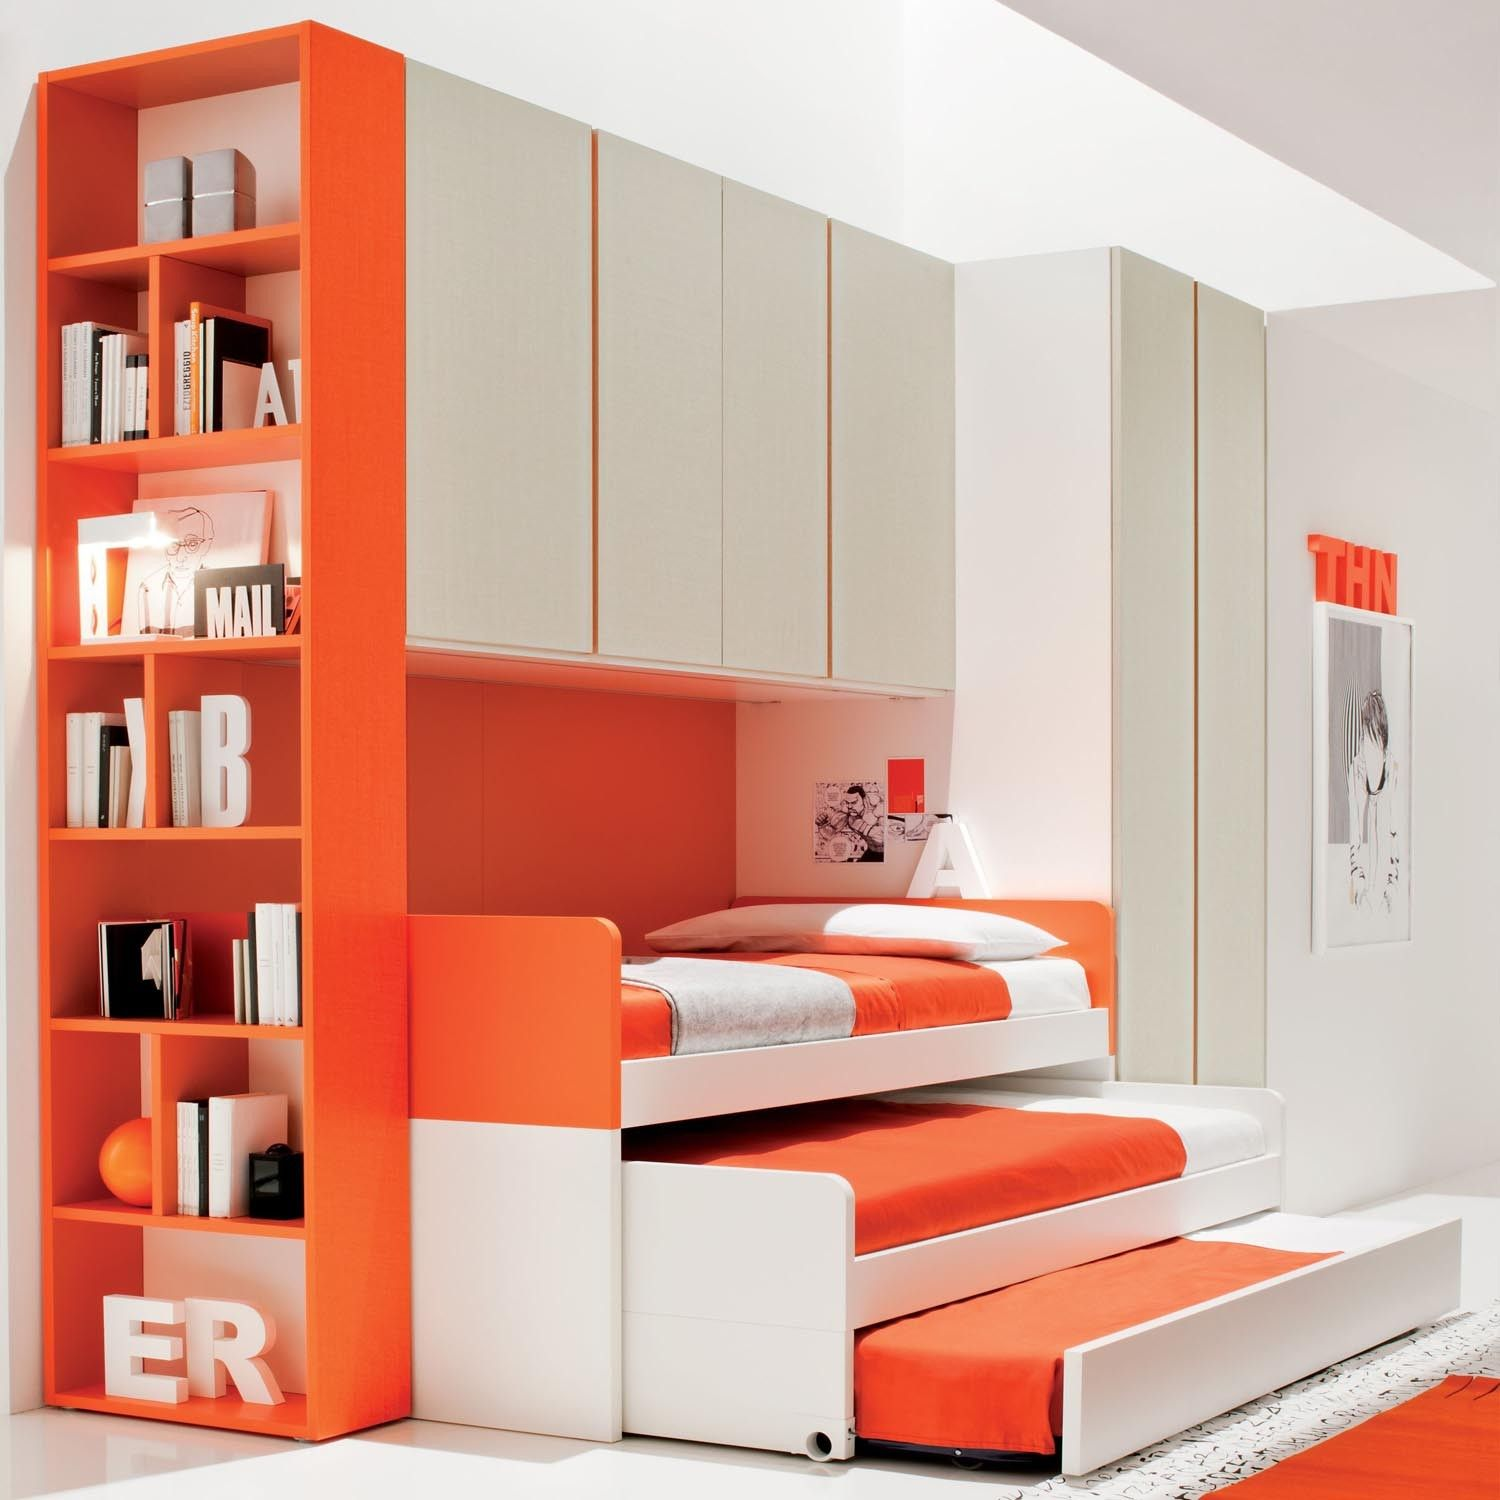 Modern Three Level Trundle Beds For Kids Using Orrange Bedding Sheet And  Orange Stained Wooden Bookshelf